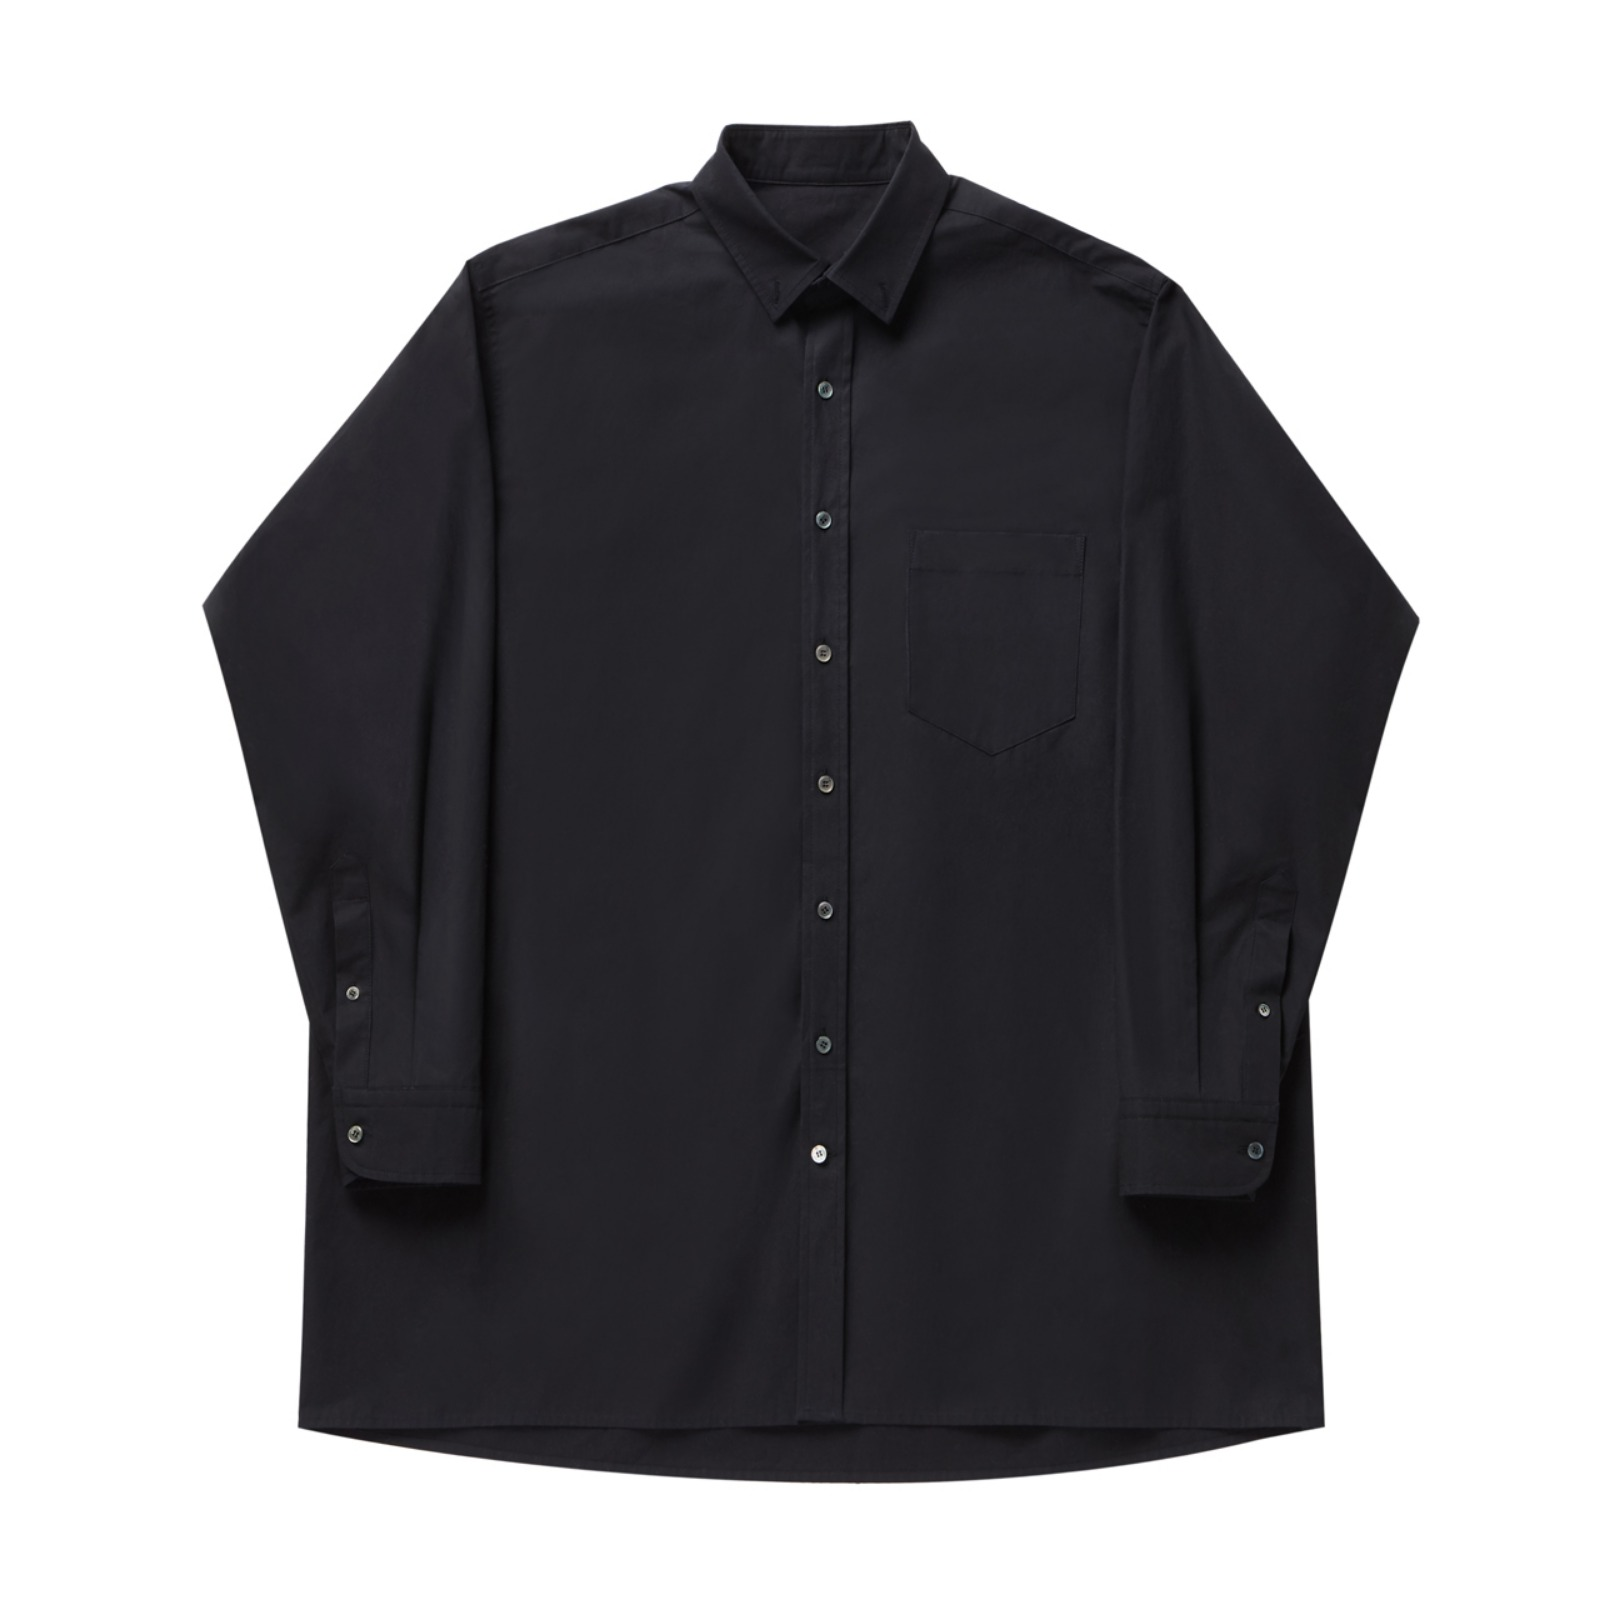 Long shirt 001 Black(Unisex)